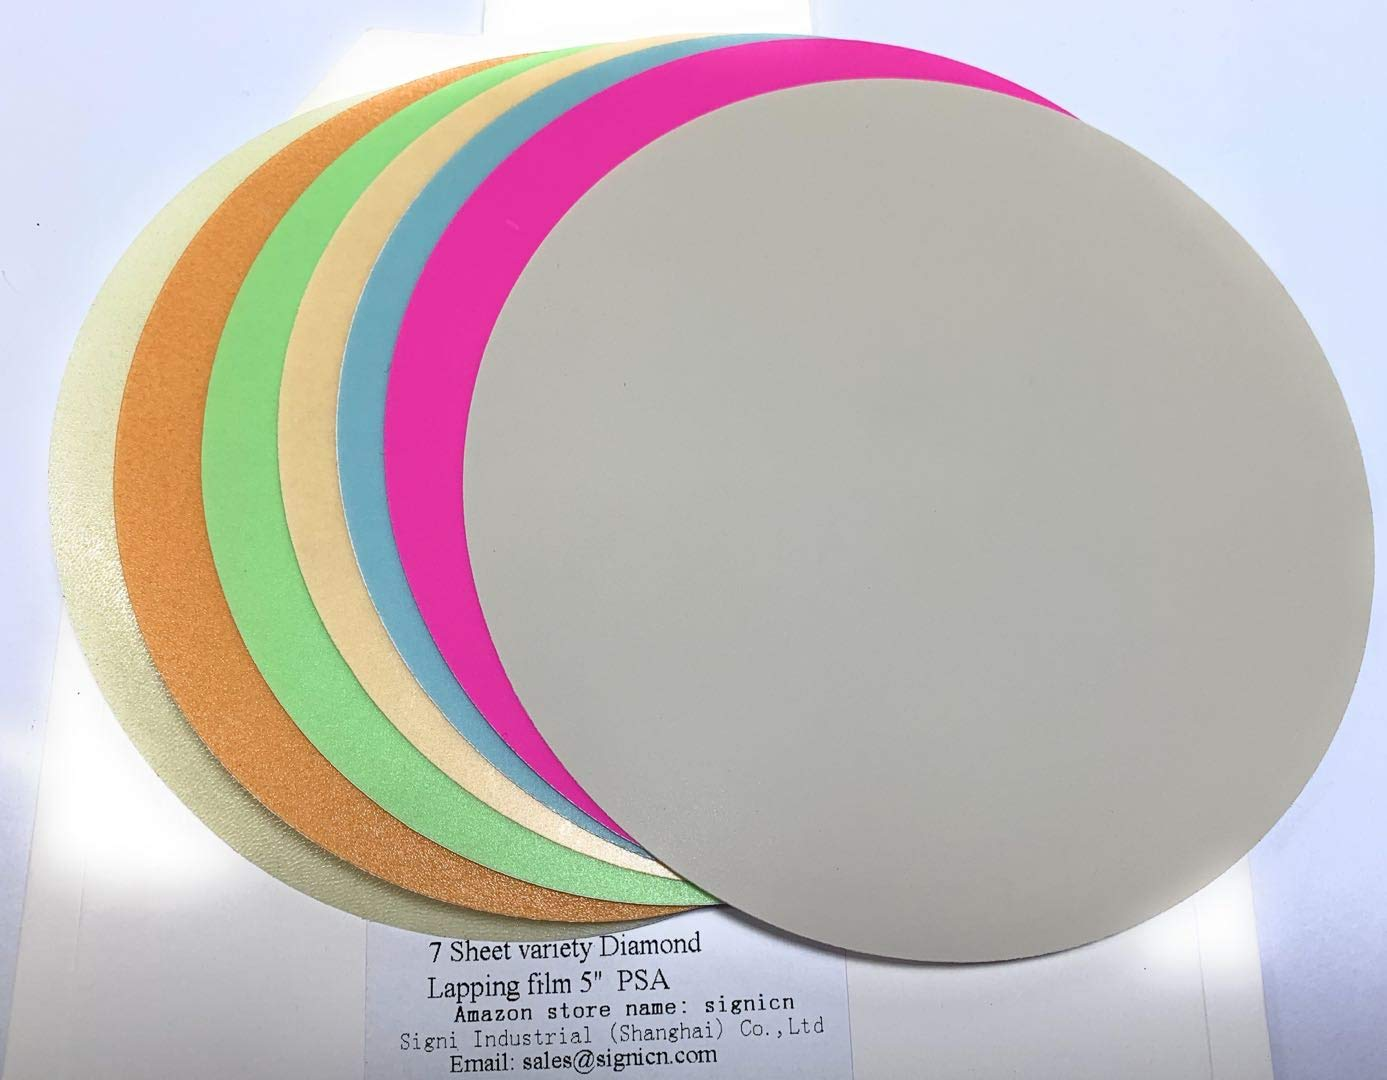 7 Sheet Variety Pack 5 inch Lapping Microfinishing Film Diamond PSA 1,3, 9, 15, 30,45 and 60 microns D